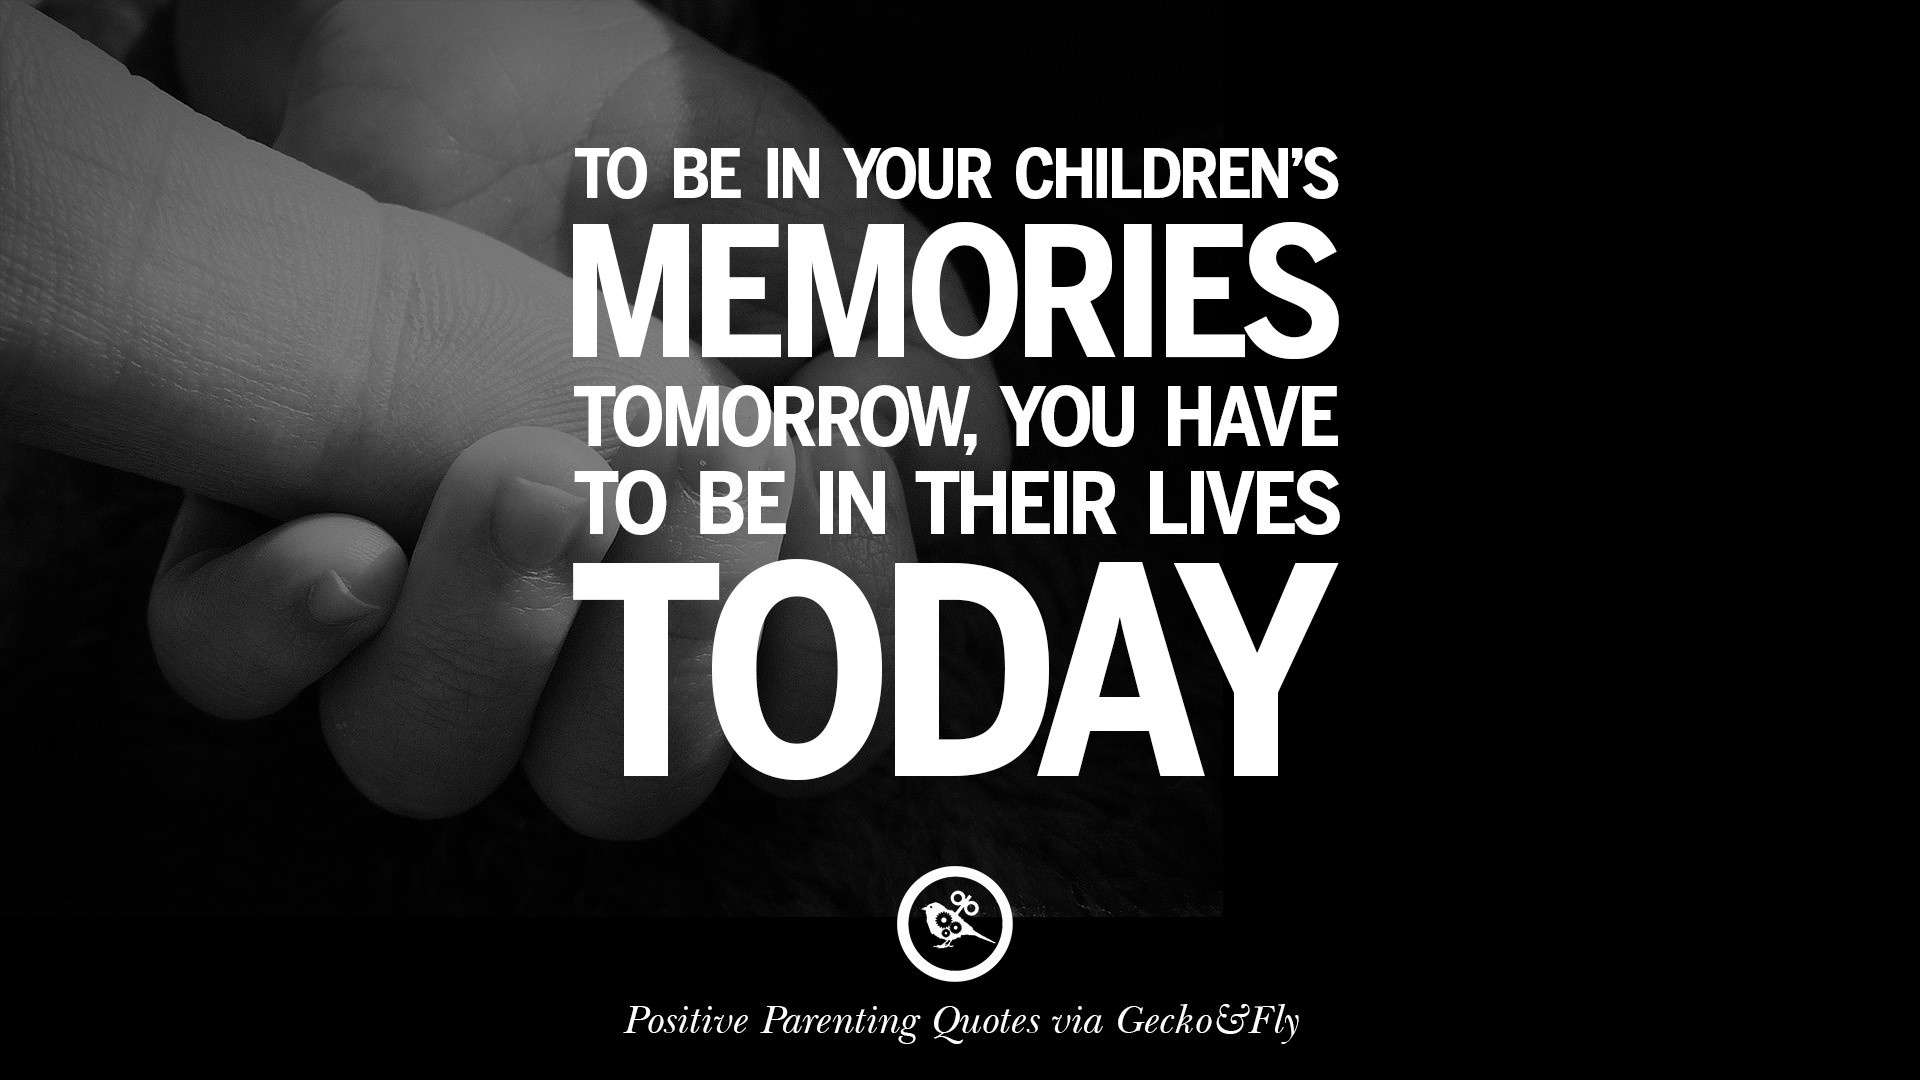 Quotes About Children  20 Positive Parenting Quotes Raising Children And Be A